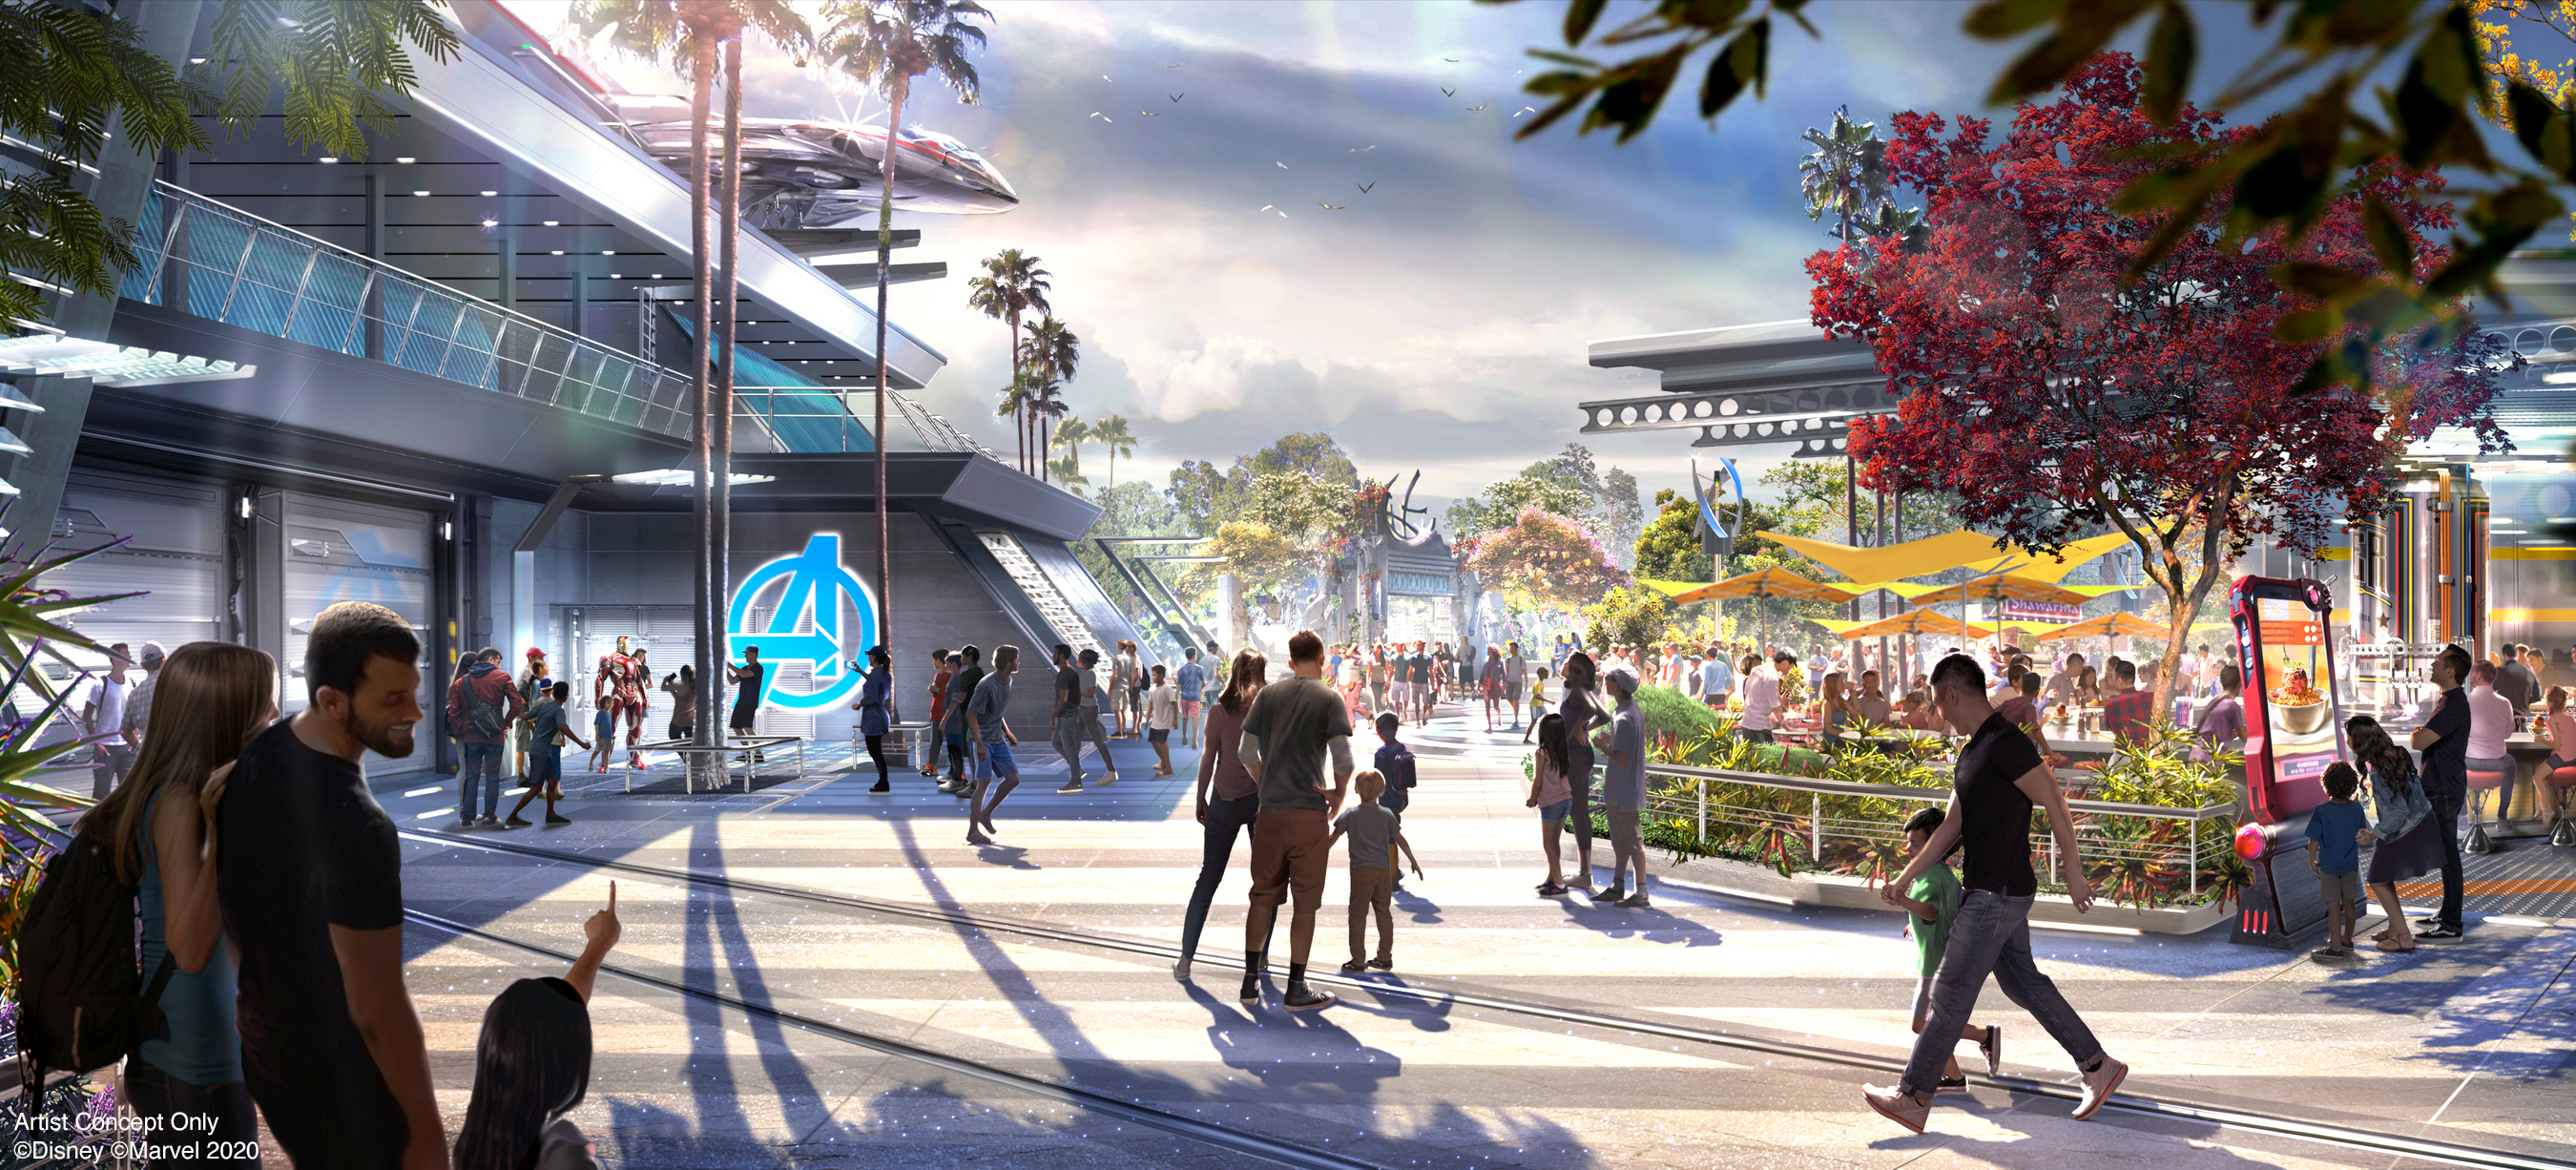 Avengers Campus is an entirely new land dedicated to discovering, recruiting and training the next generation of heroes, opening in summer 2020 at Disney California Adventure Park in Anaheim, California. To the right of the image, the outdoor seating area at Pym Test Kitchen is a great place to fuel up and watch for Super Heroes at the nearby Avengers Headquarters